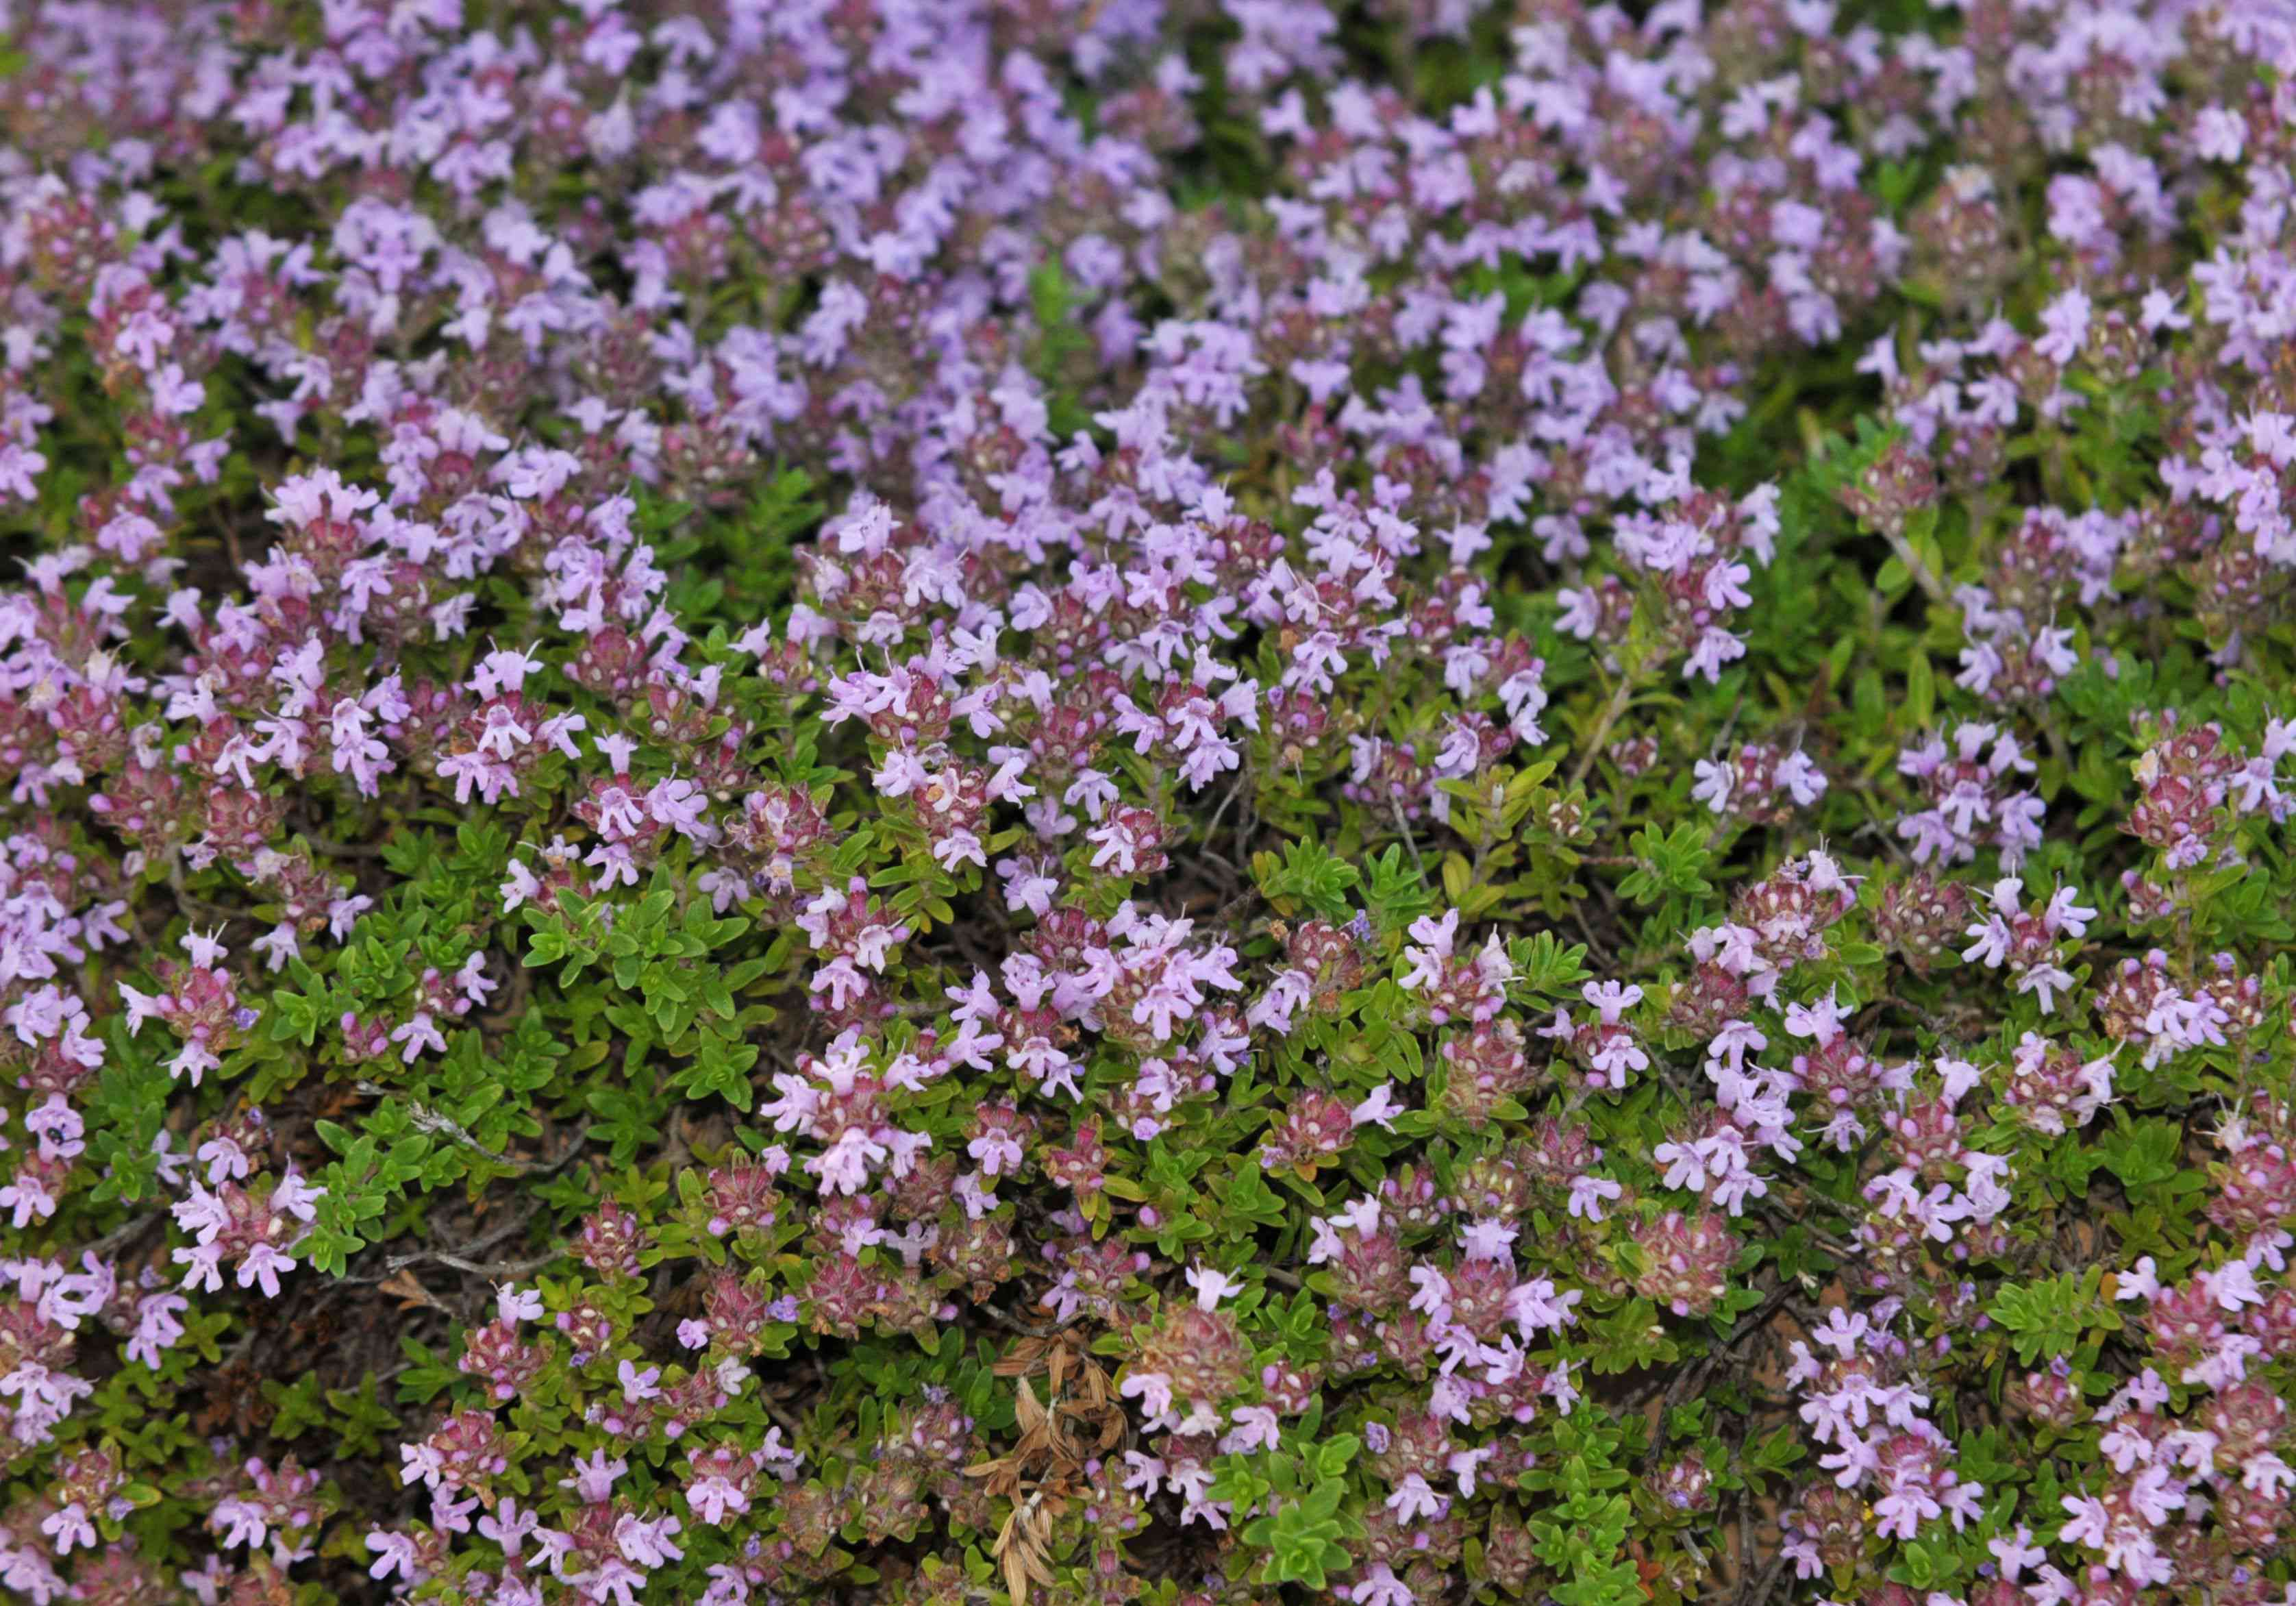 Creeping thyme plant with small pink flowers and leaves closeup